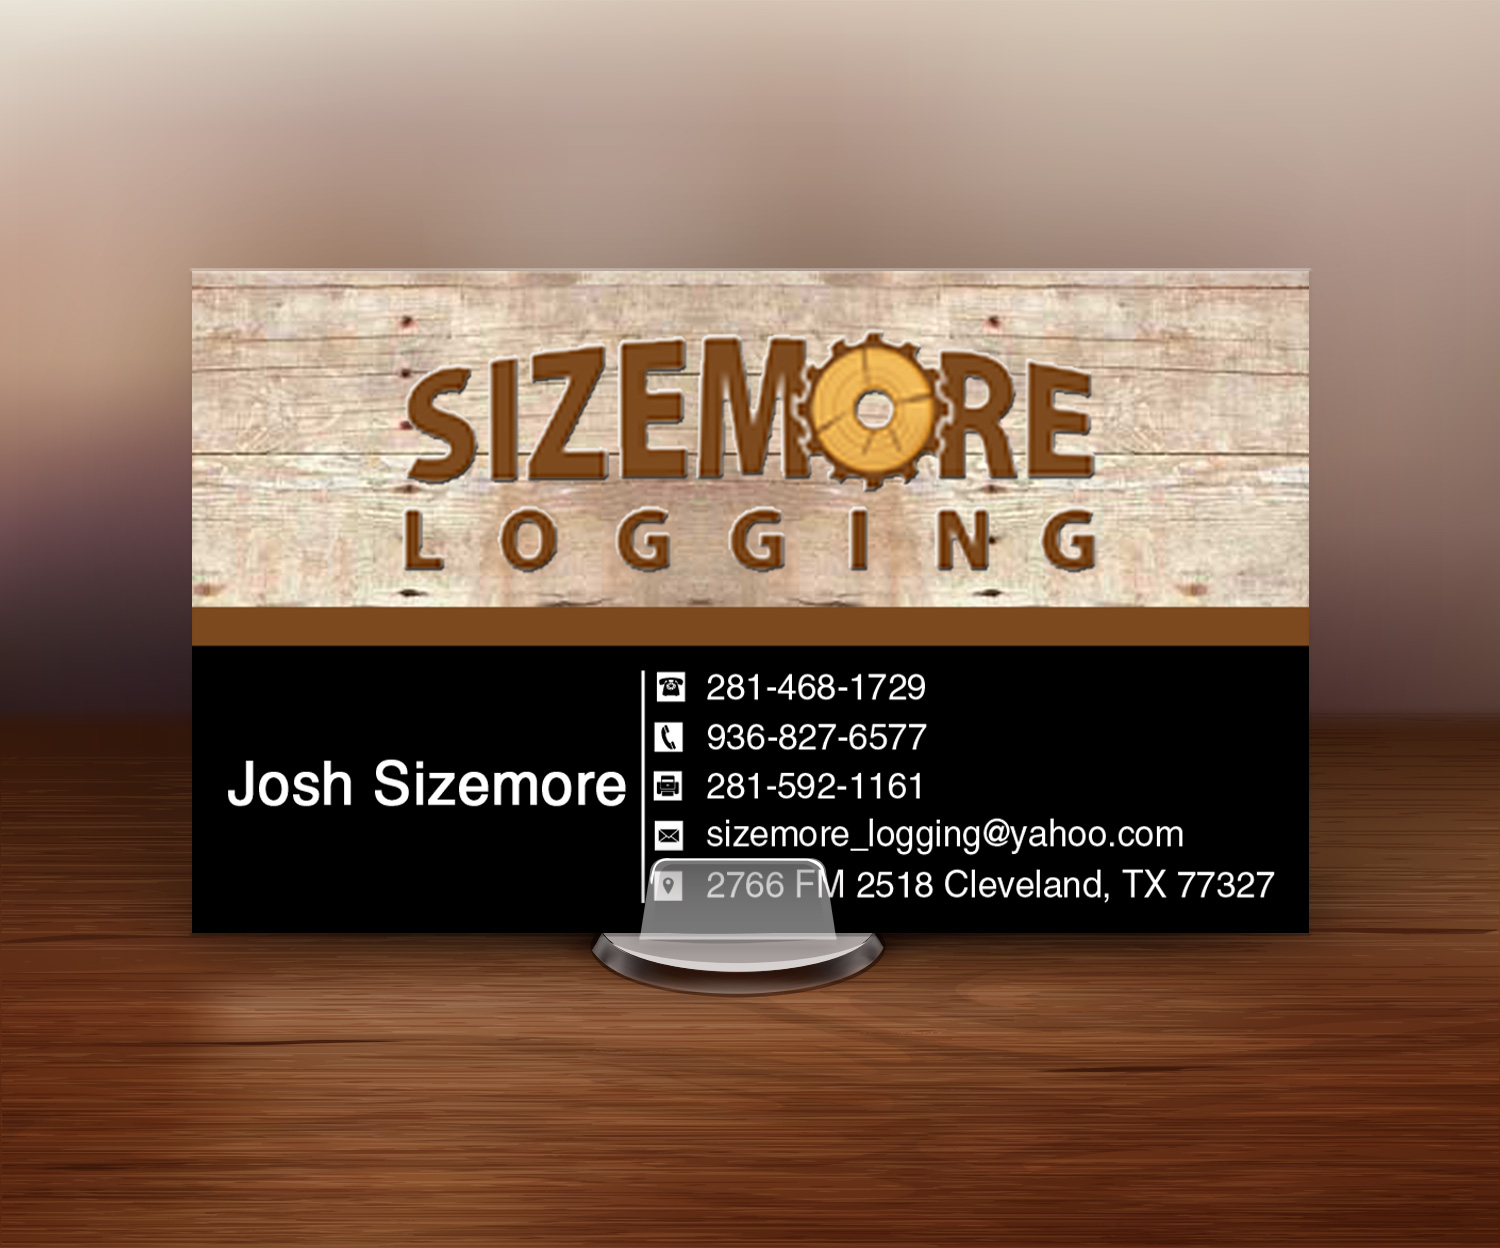 Awesome Logging Business Cards Gallery - Business Card Ideas ...